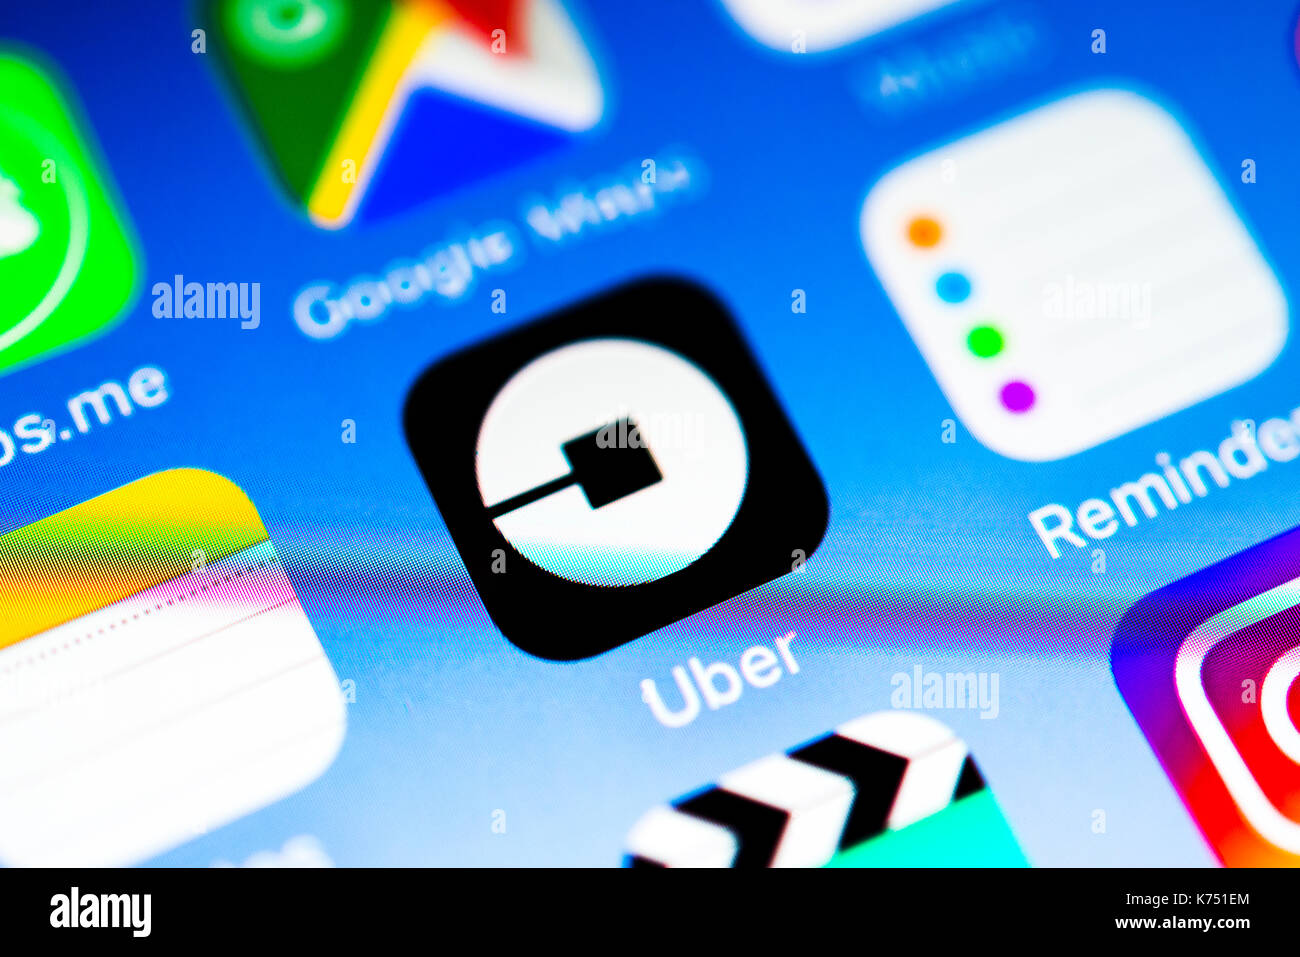 About App, App-Icon, Display on a screen of a mobile phone, iPhone, iOS, Smartphone, Macro recording, Detail, full size - Stock Image